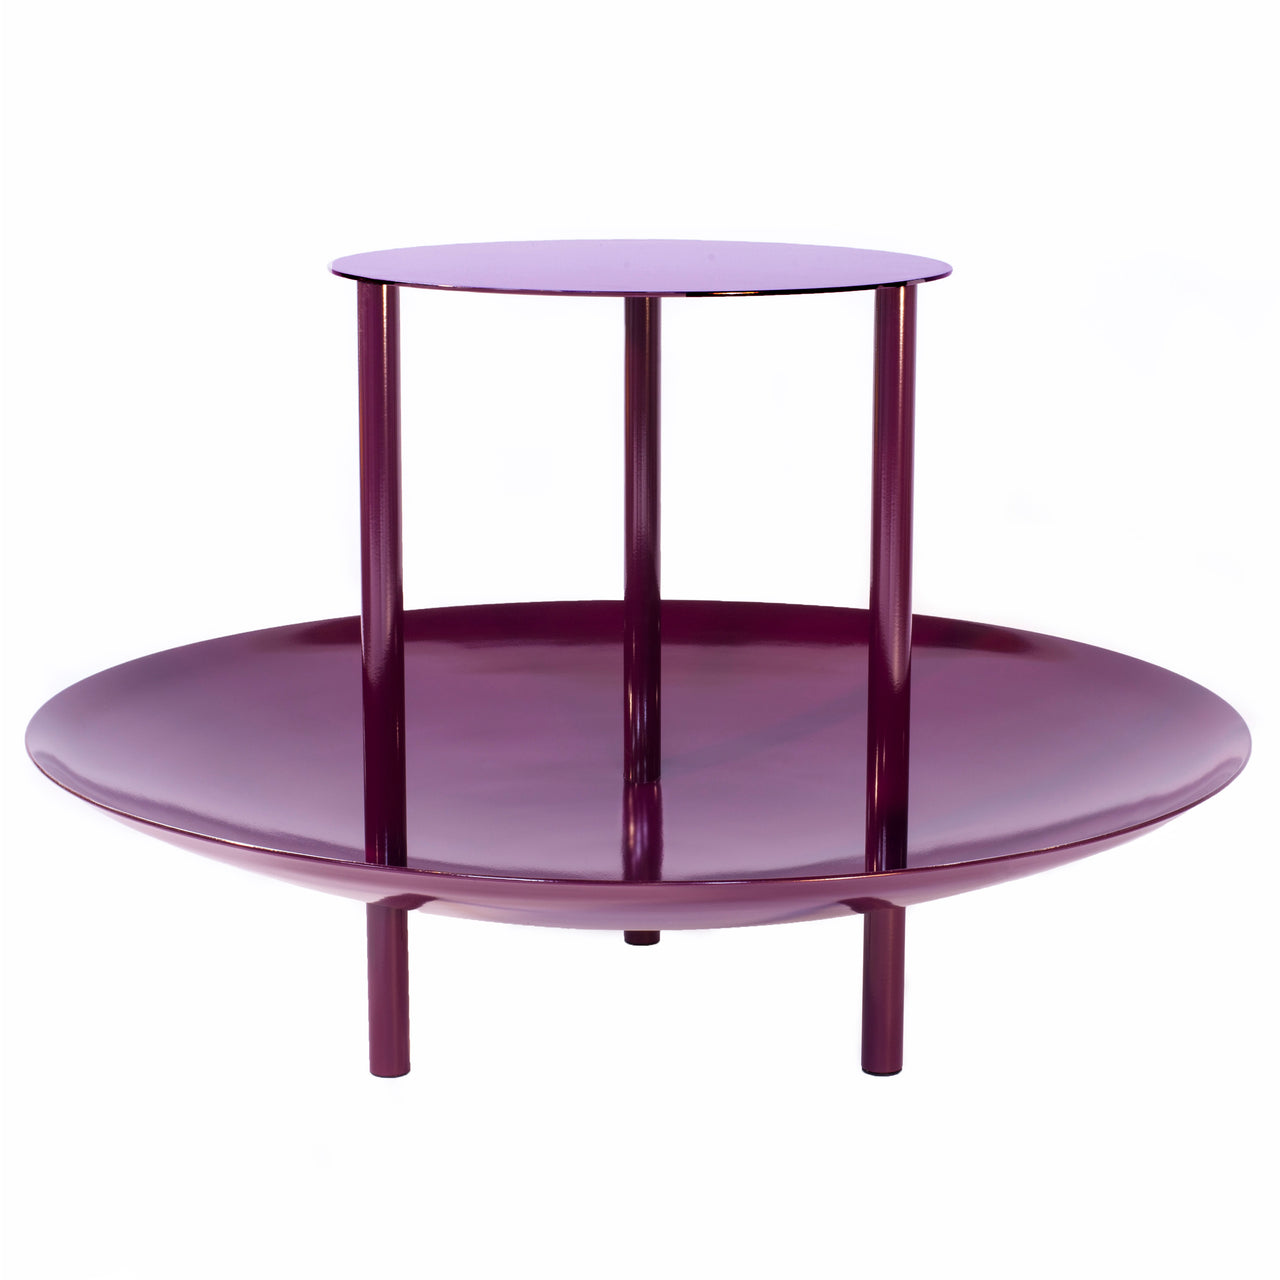 Magazine Table: Plum